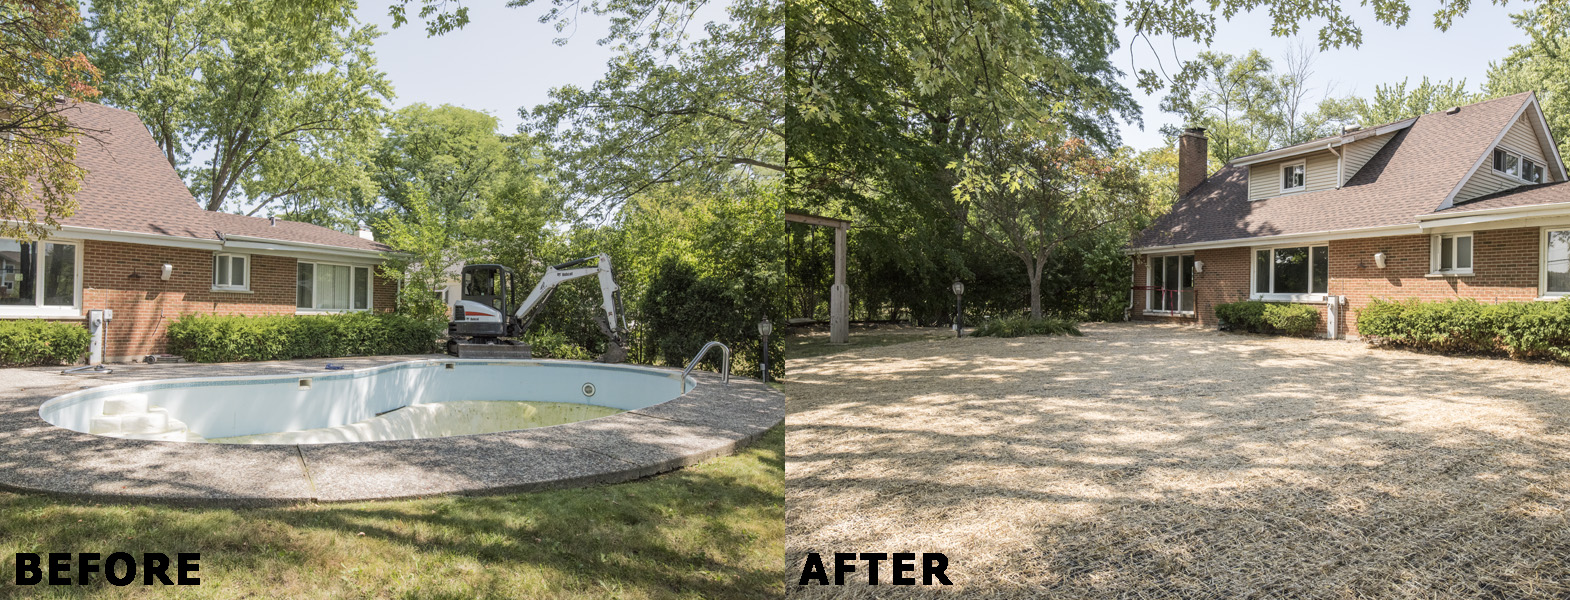 Mack Land LLC - Northbrook, IL Pool Removal